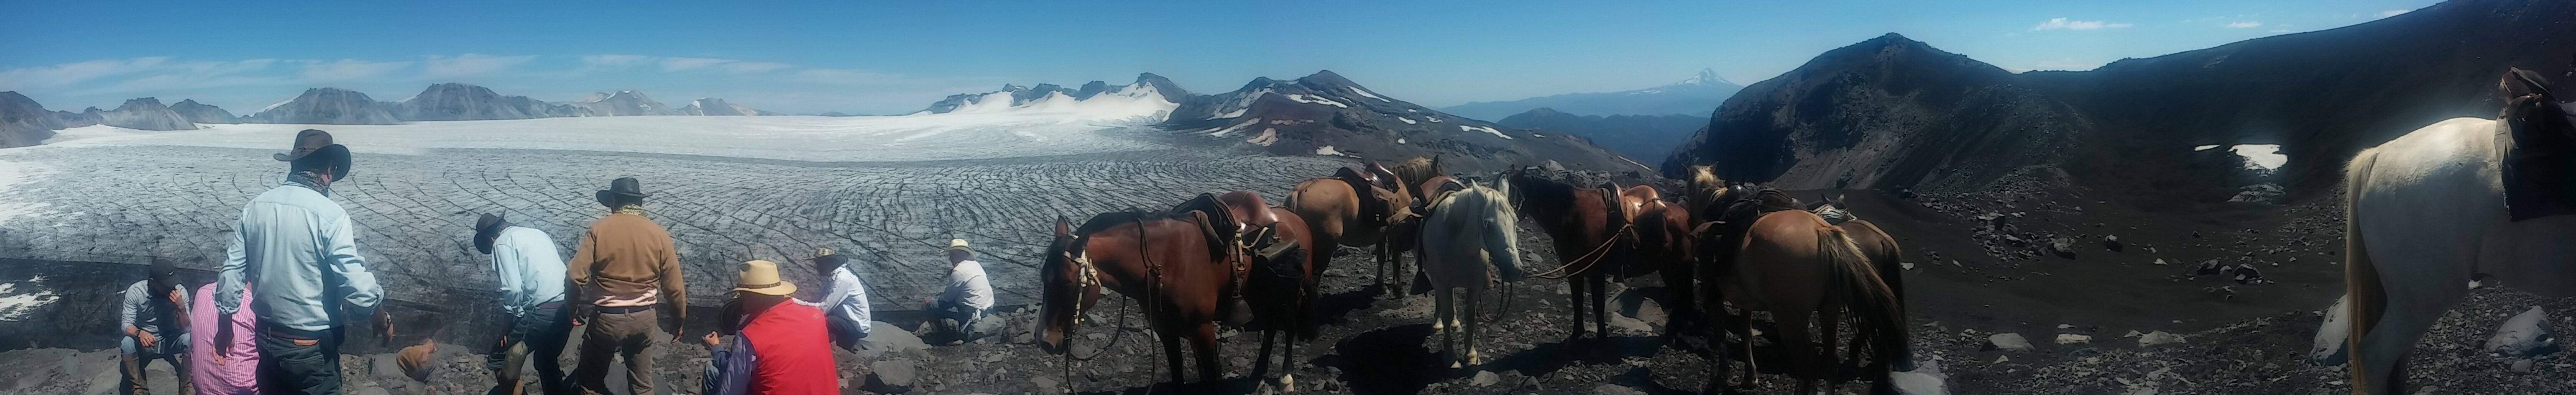 Riders and horses in front of the crater of Sollipulli